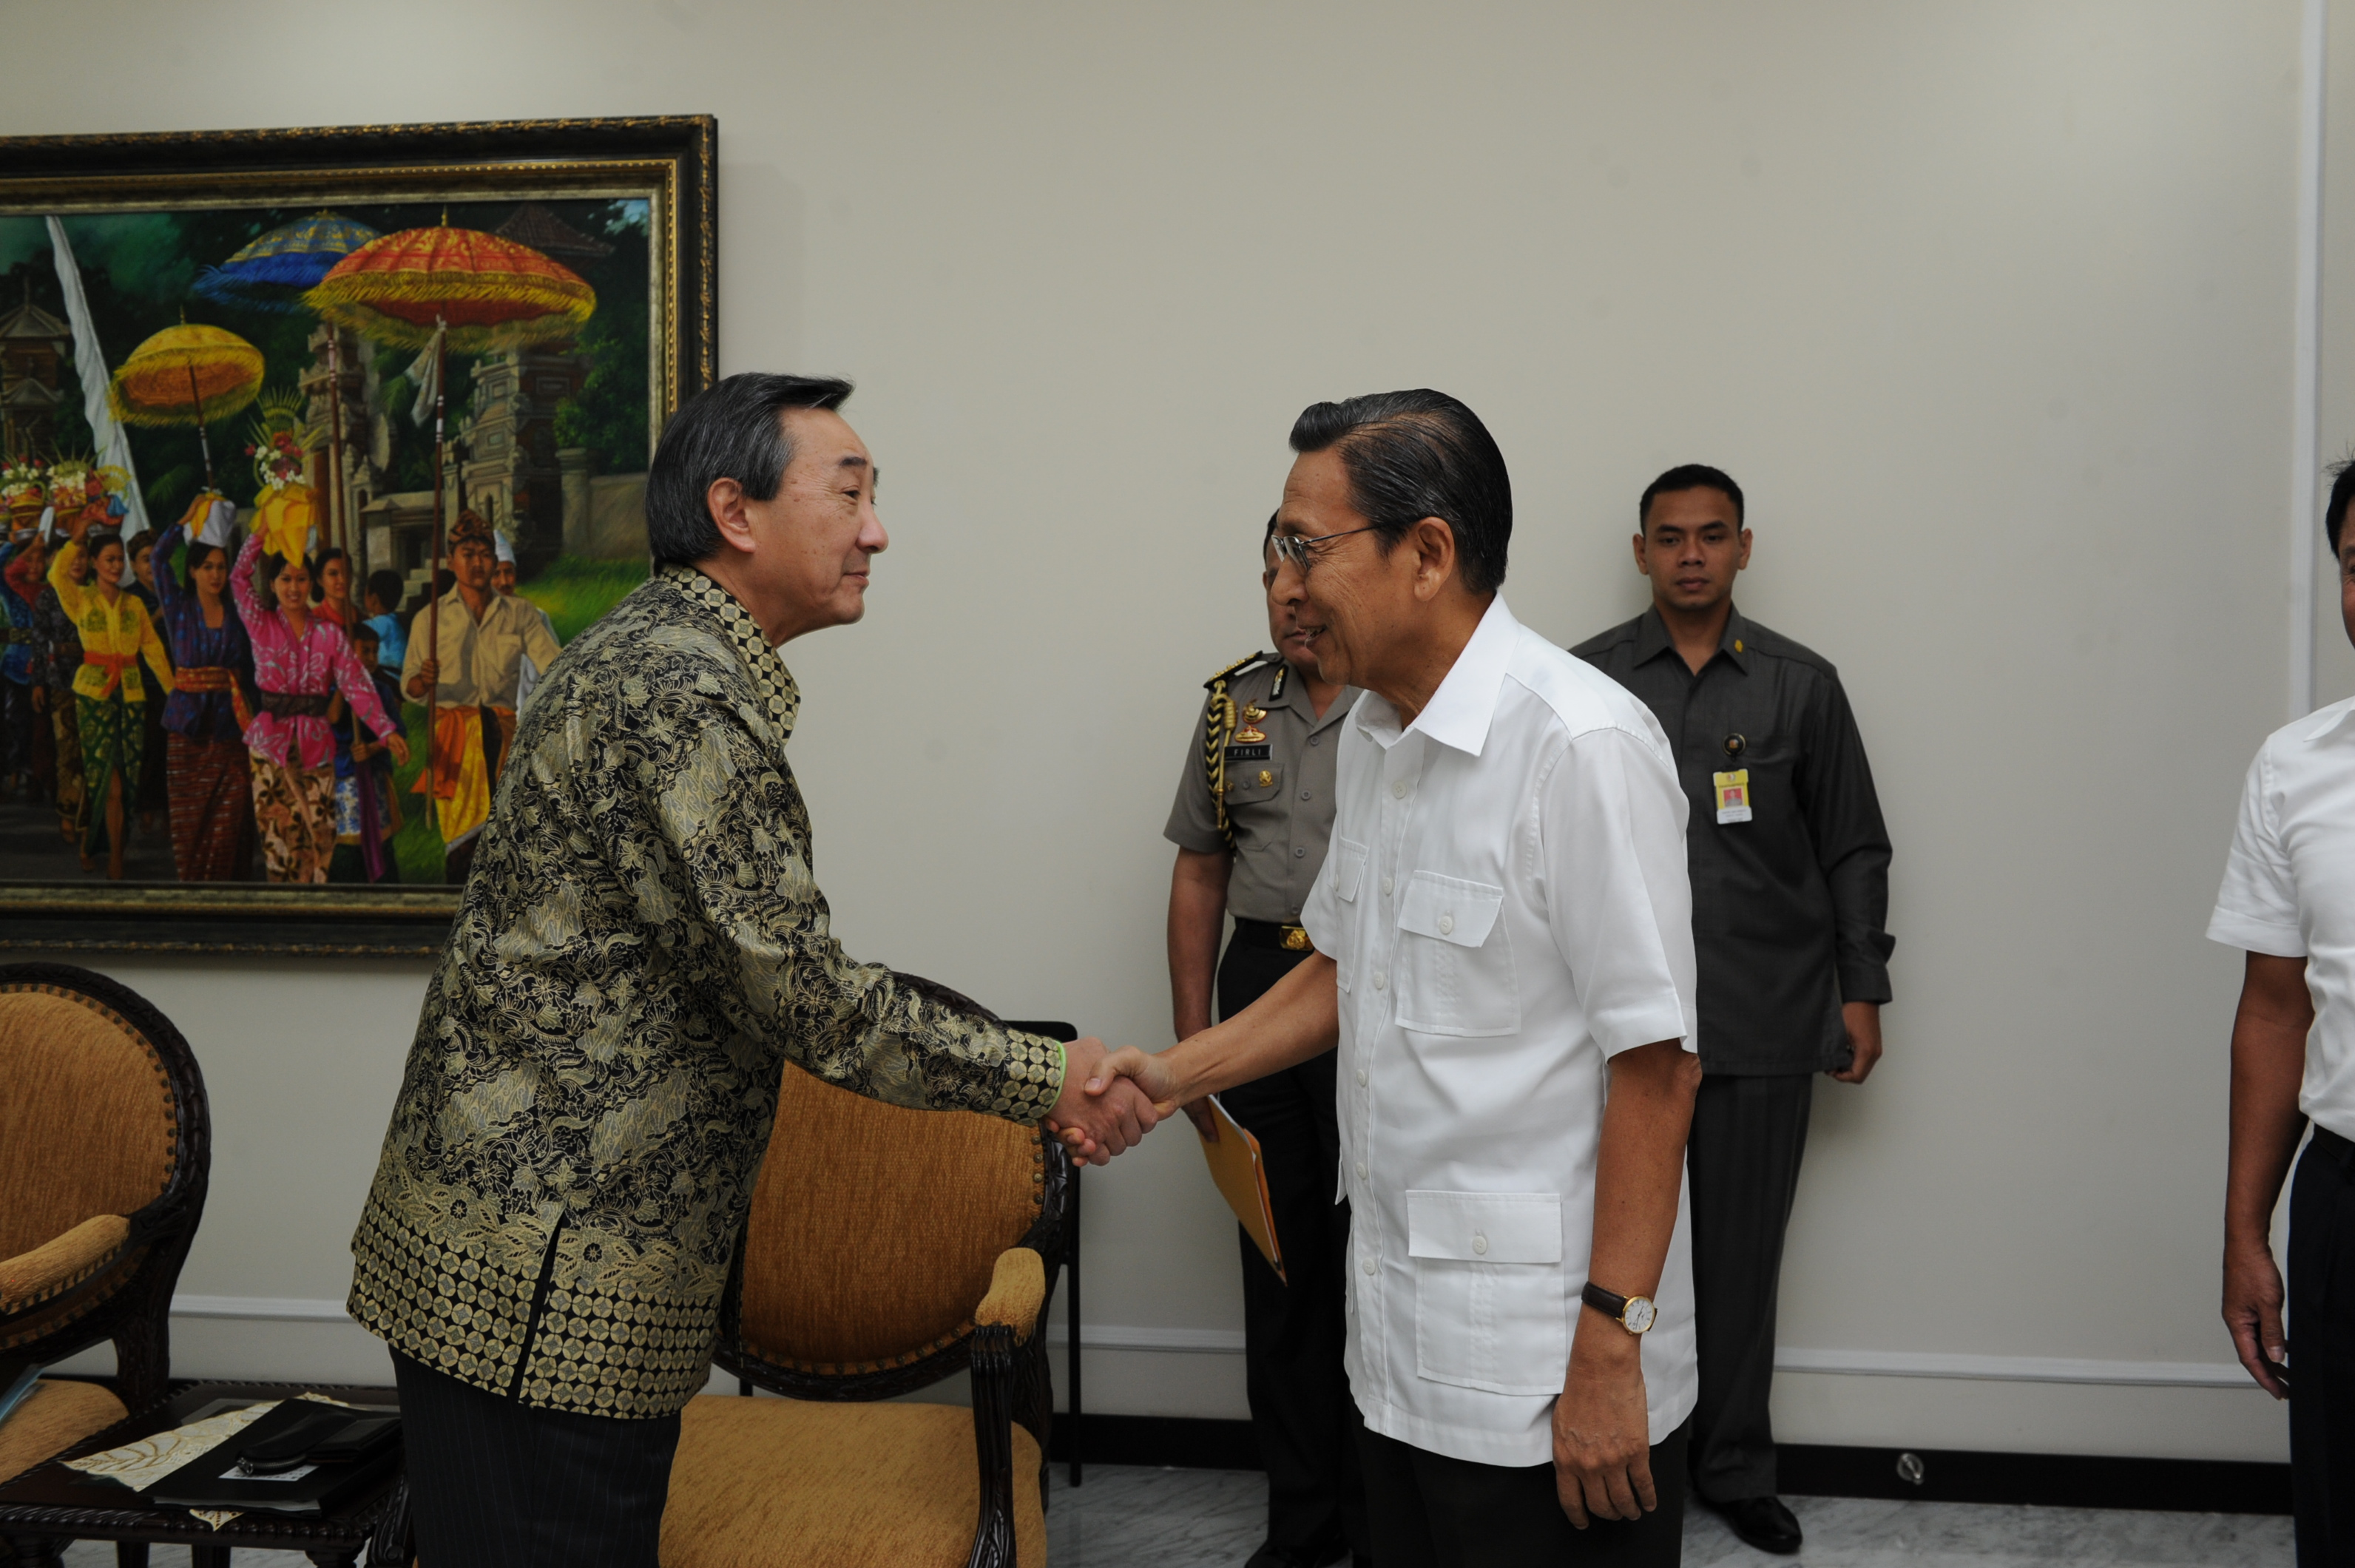 Mr. Asada (Chairman of the Board of Marubeni Corporation) visited the Vice President of Republic of Indonesia